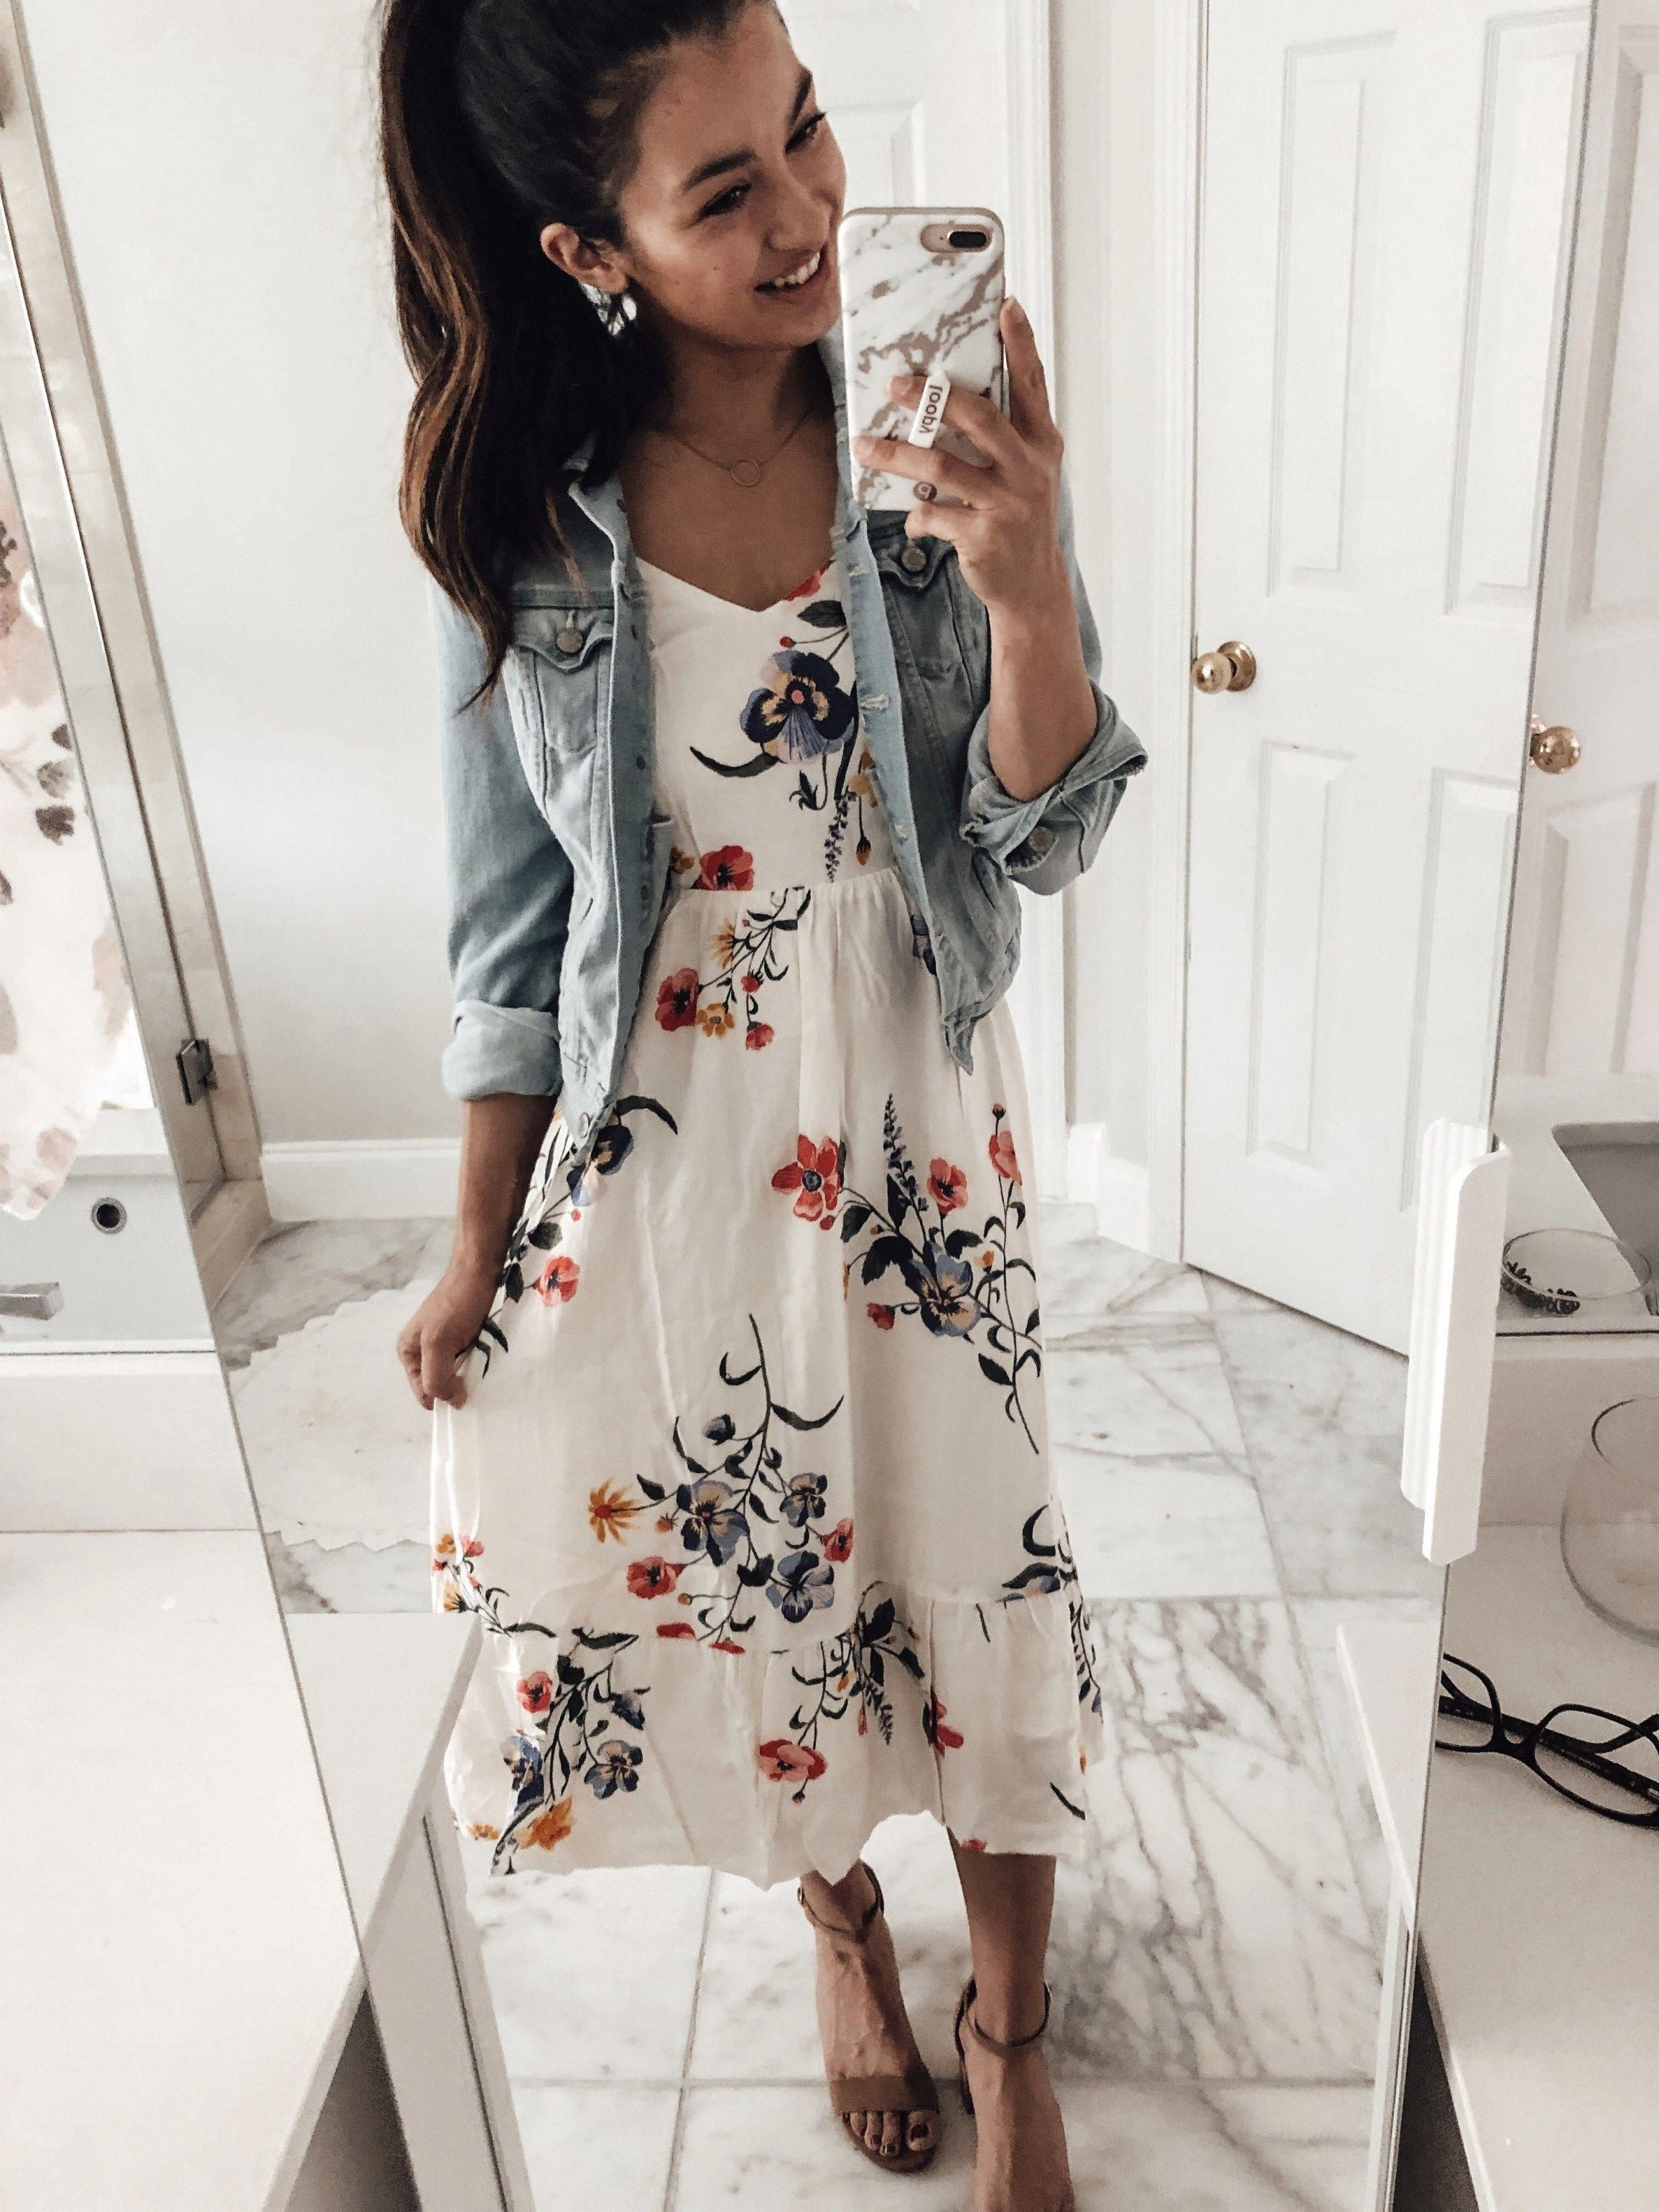 Awesome Women Dresses Are Offered On Our Site Read More And You Wont Be Sorry You Did Easter Dresses For Women Black Floral Bodycon Dress Bodycon Floral Dress [ 3080 x 2310 Pixel ]